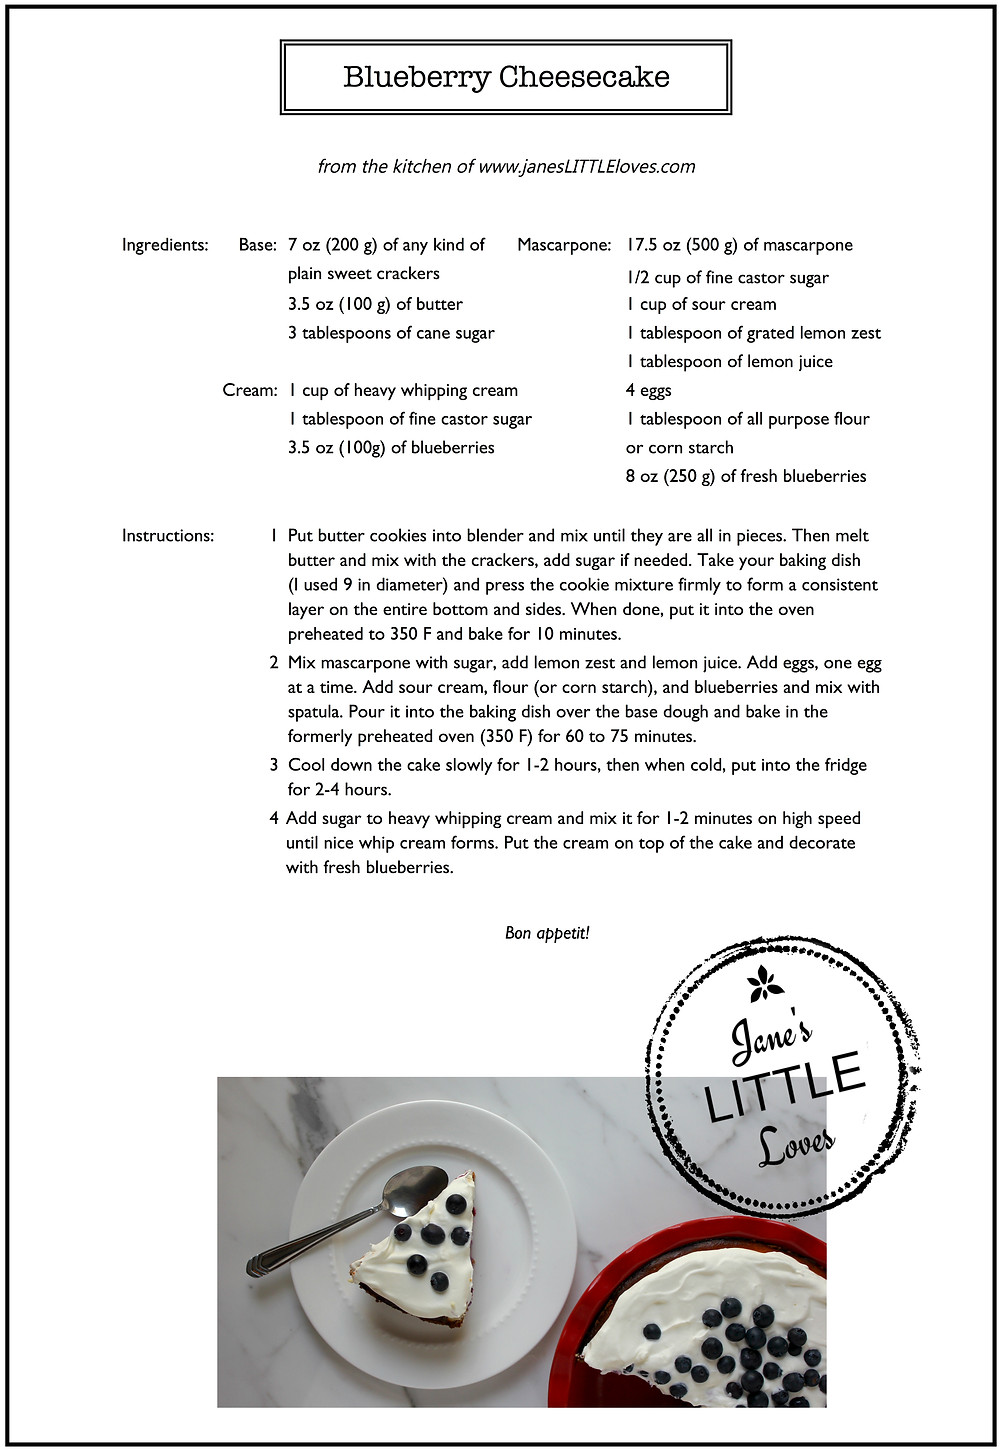 blueberry cheesecake recipe card